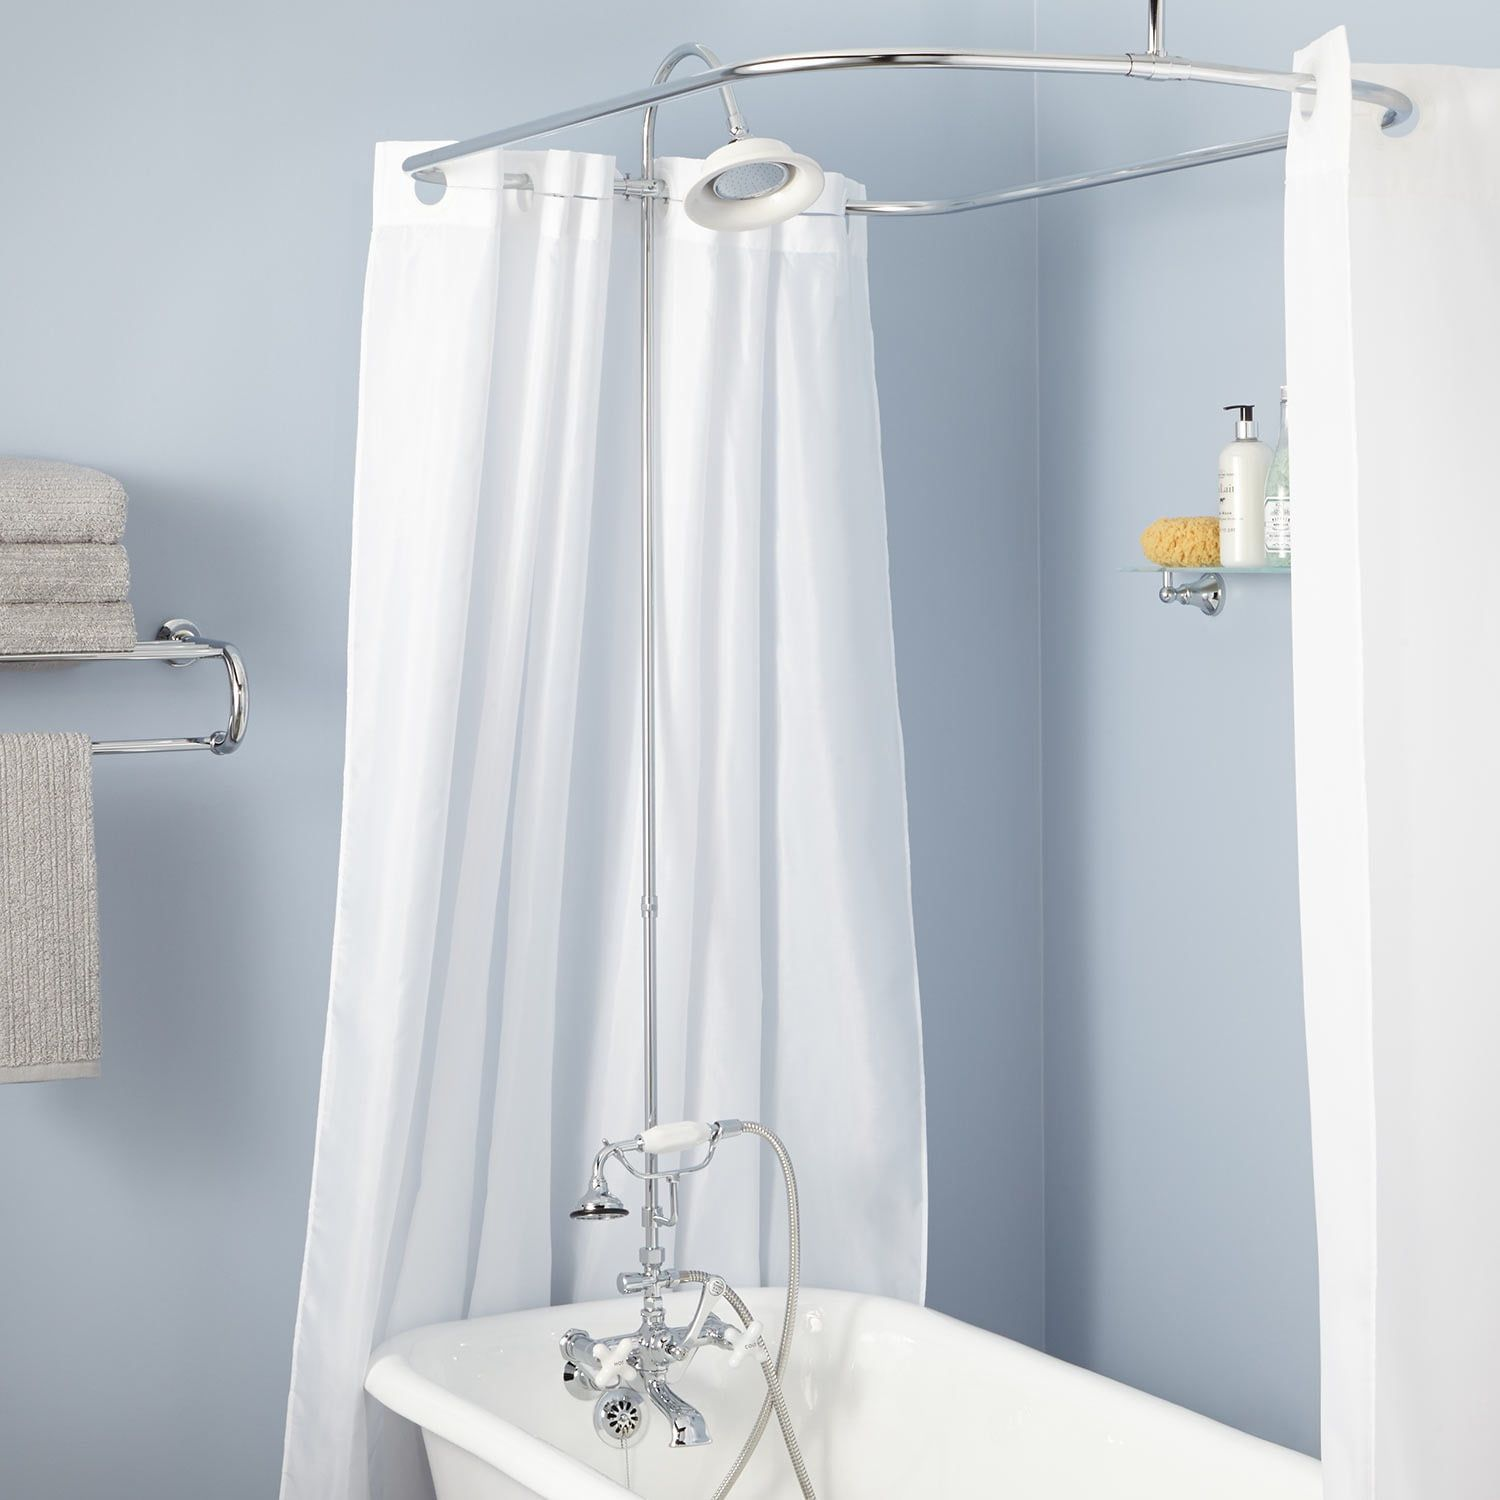 Rim Mount Clawfoot Tub Hand Shower Kit Swing Arms D Style